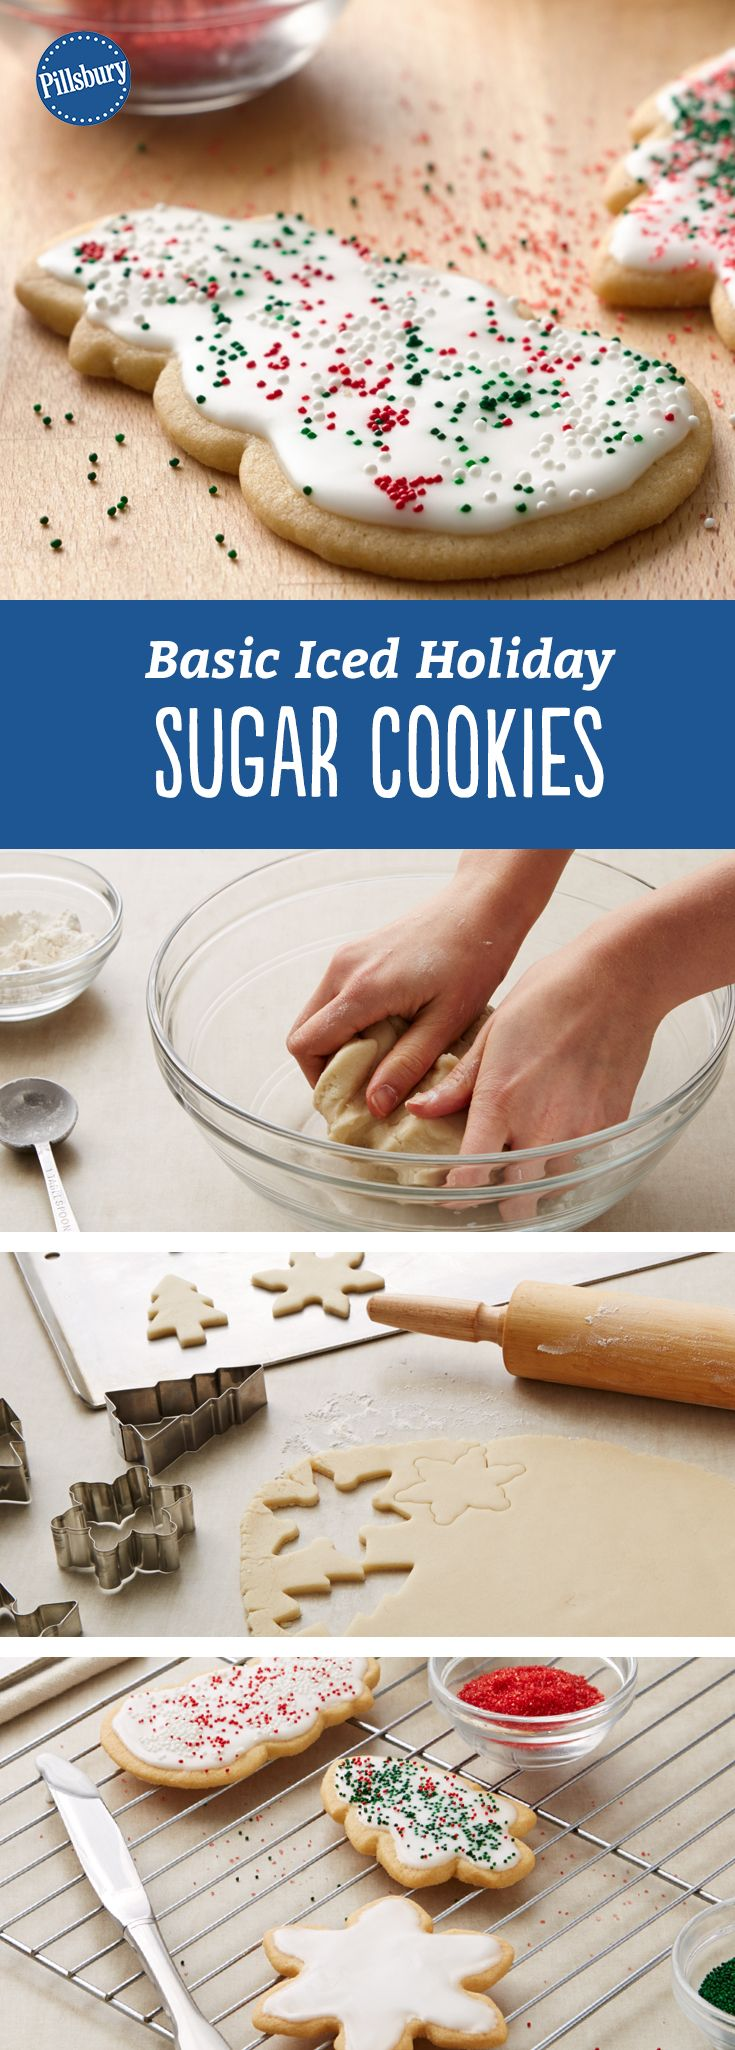 Basic Iced Holiday Sugar Cookies: Whether you need Valentine's Day treats for the class or Christmas sweets to leave out for Santa, these versatile holiday sugar cookies have got you covered.